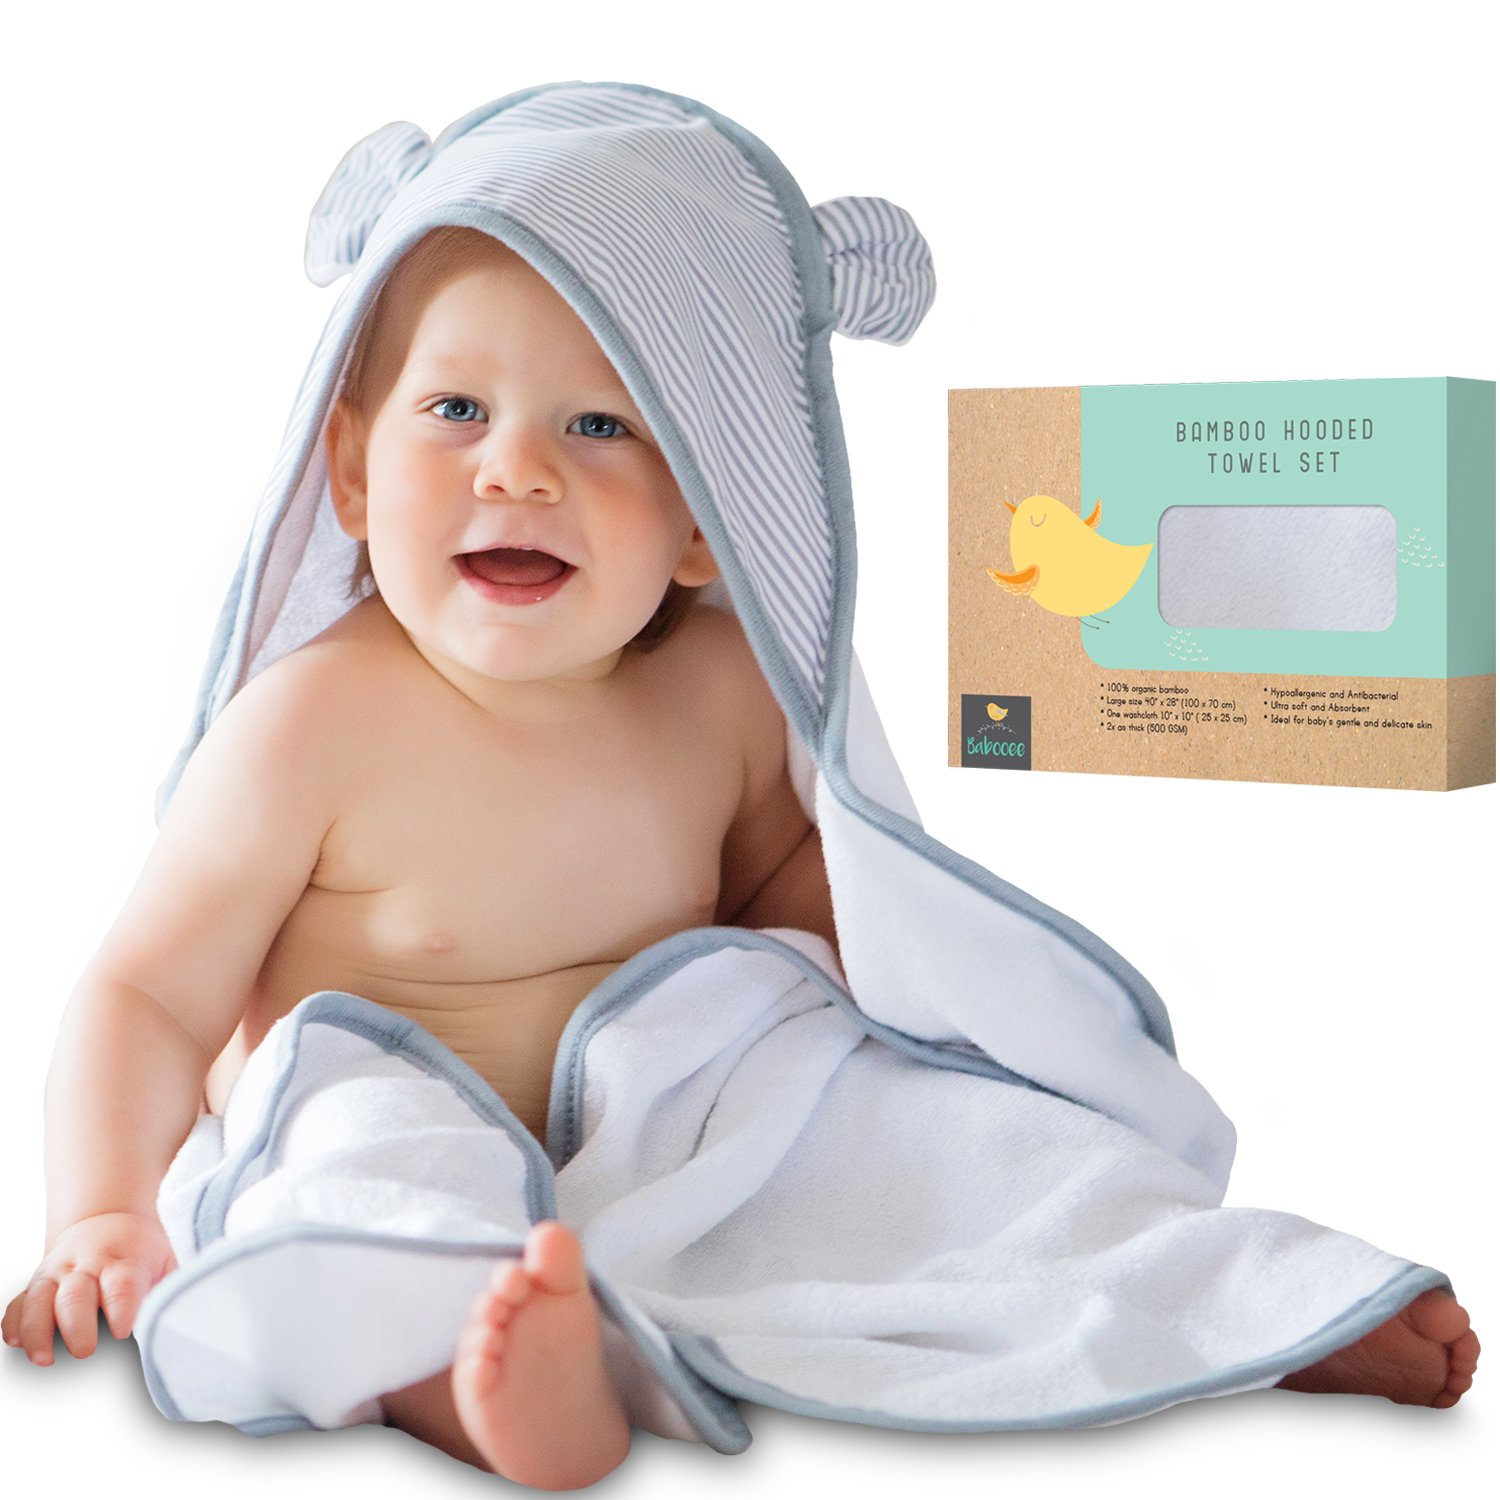 Soft /& Delicate Fabric 10 x 10 In 8 Pack, White Highly Absorbent Hypoallergenic Organic Baby Washcloth 500 GSM Antibacterial /& Natural UV Protectant Perfect Gift For Baby Shower Newborn Girls /& Boys 100/% Bamboo